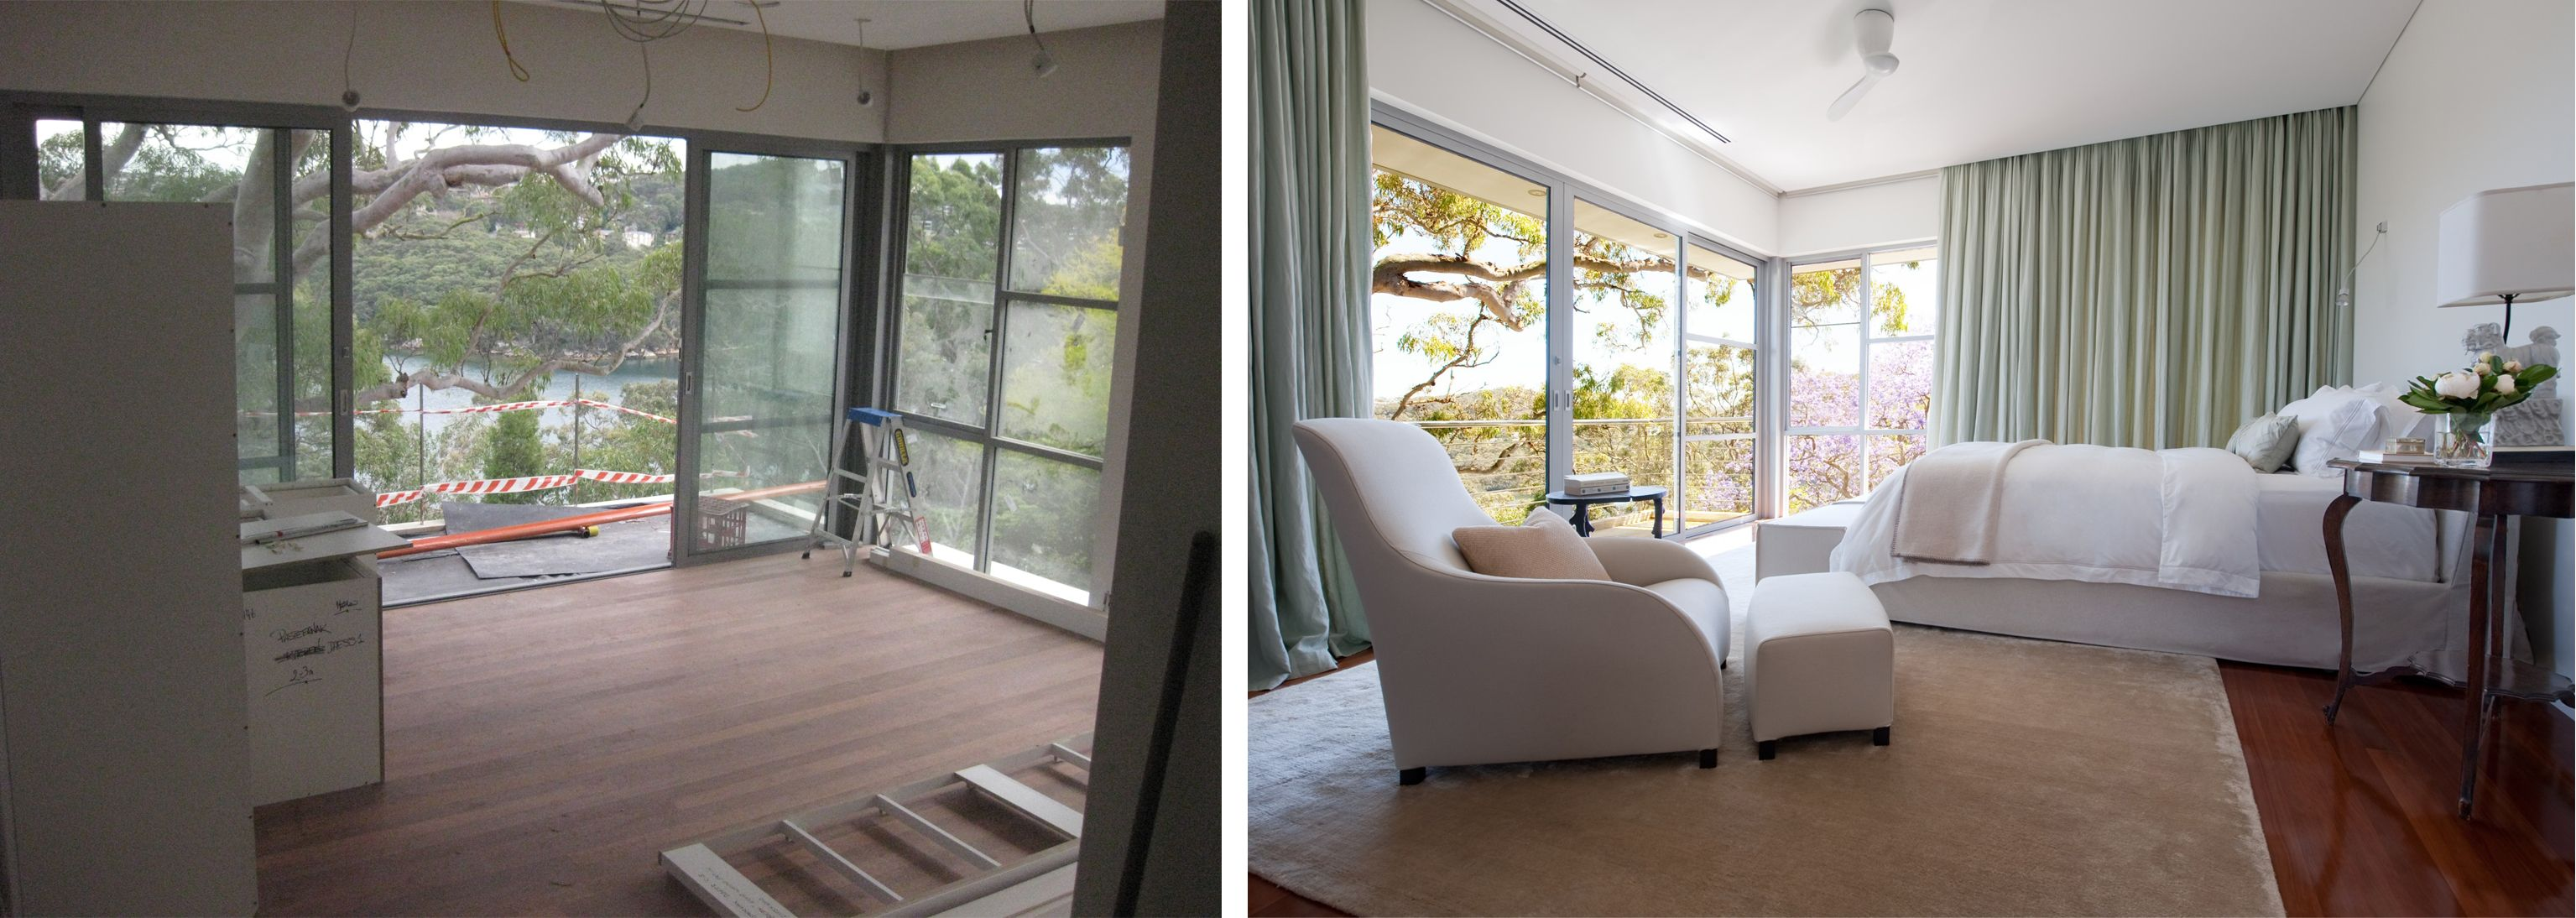 Master bedroom before and after  Castlecrag master bedroom before and after  Before u After